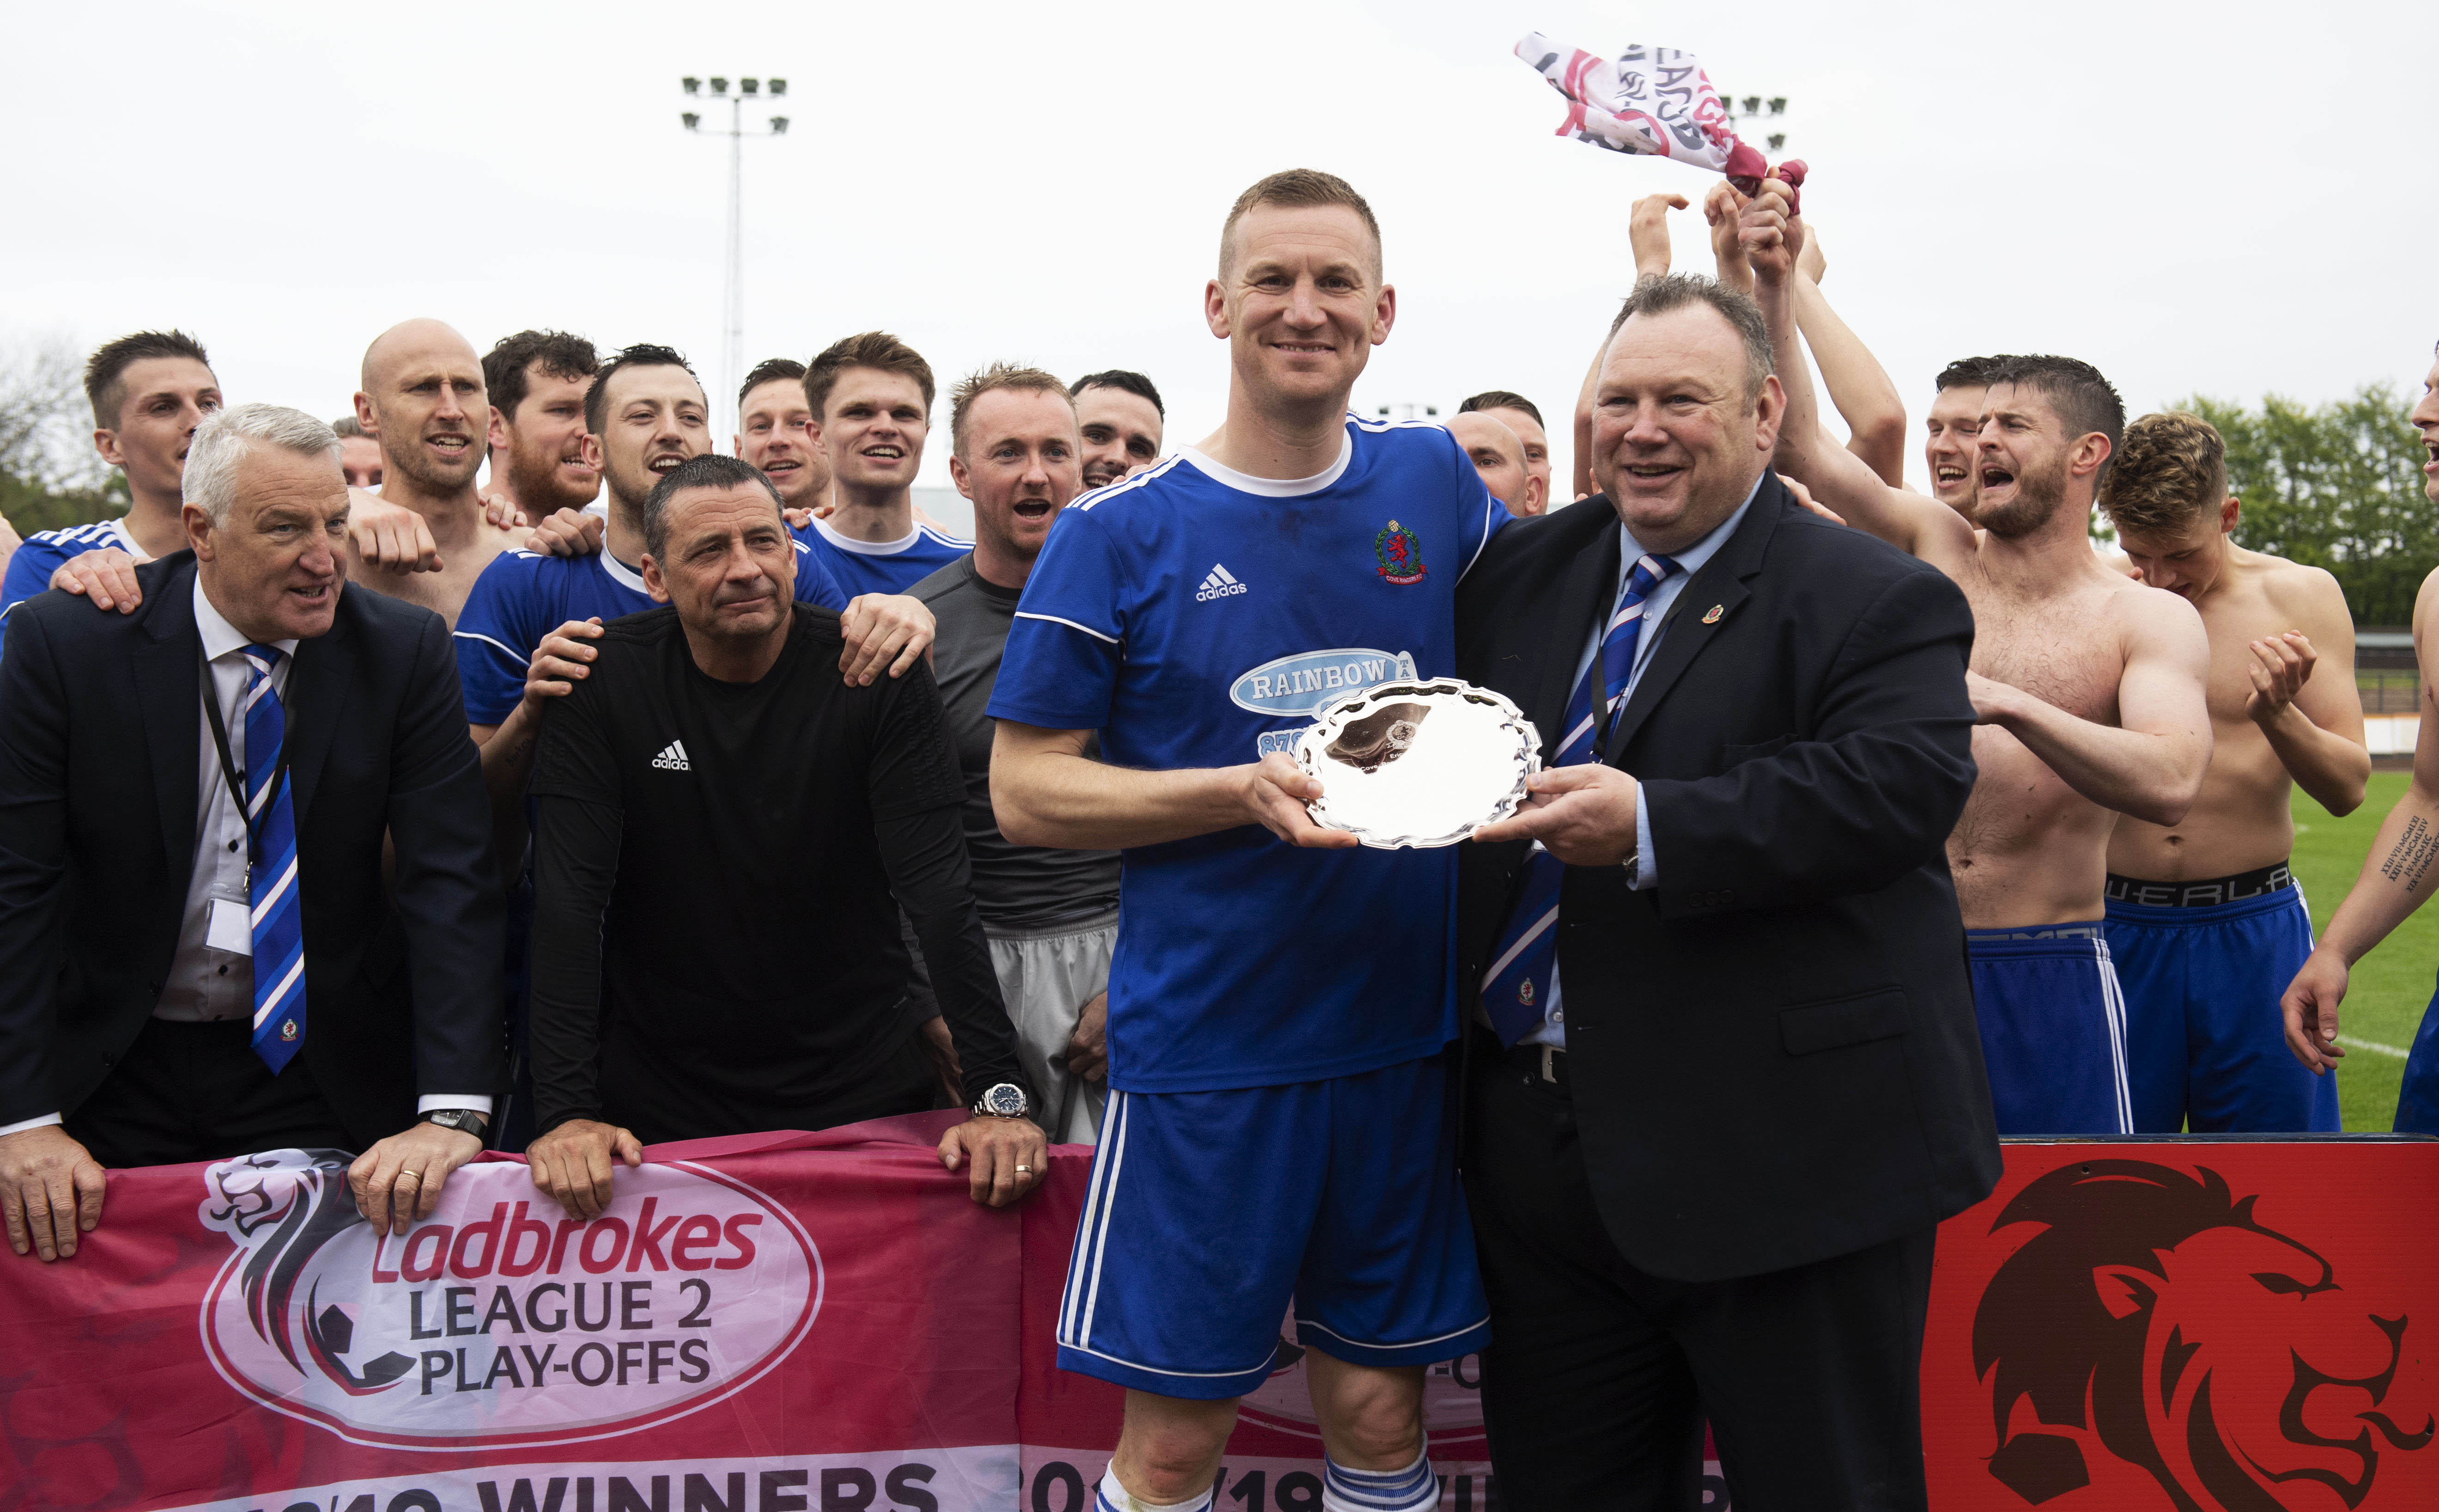 Cove Rangers chairman Keith Moorhouse presents Eric Watson with a commemorative shield on his final appearance for the club, after Cove had secured promotion to League Two.